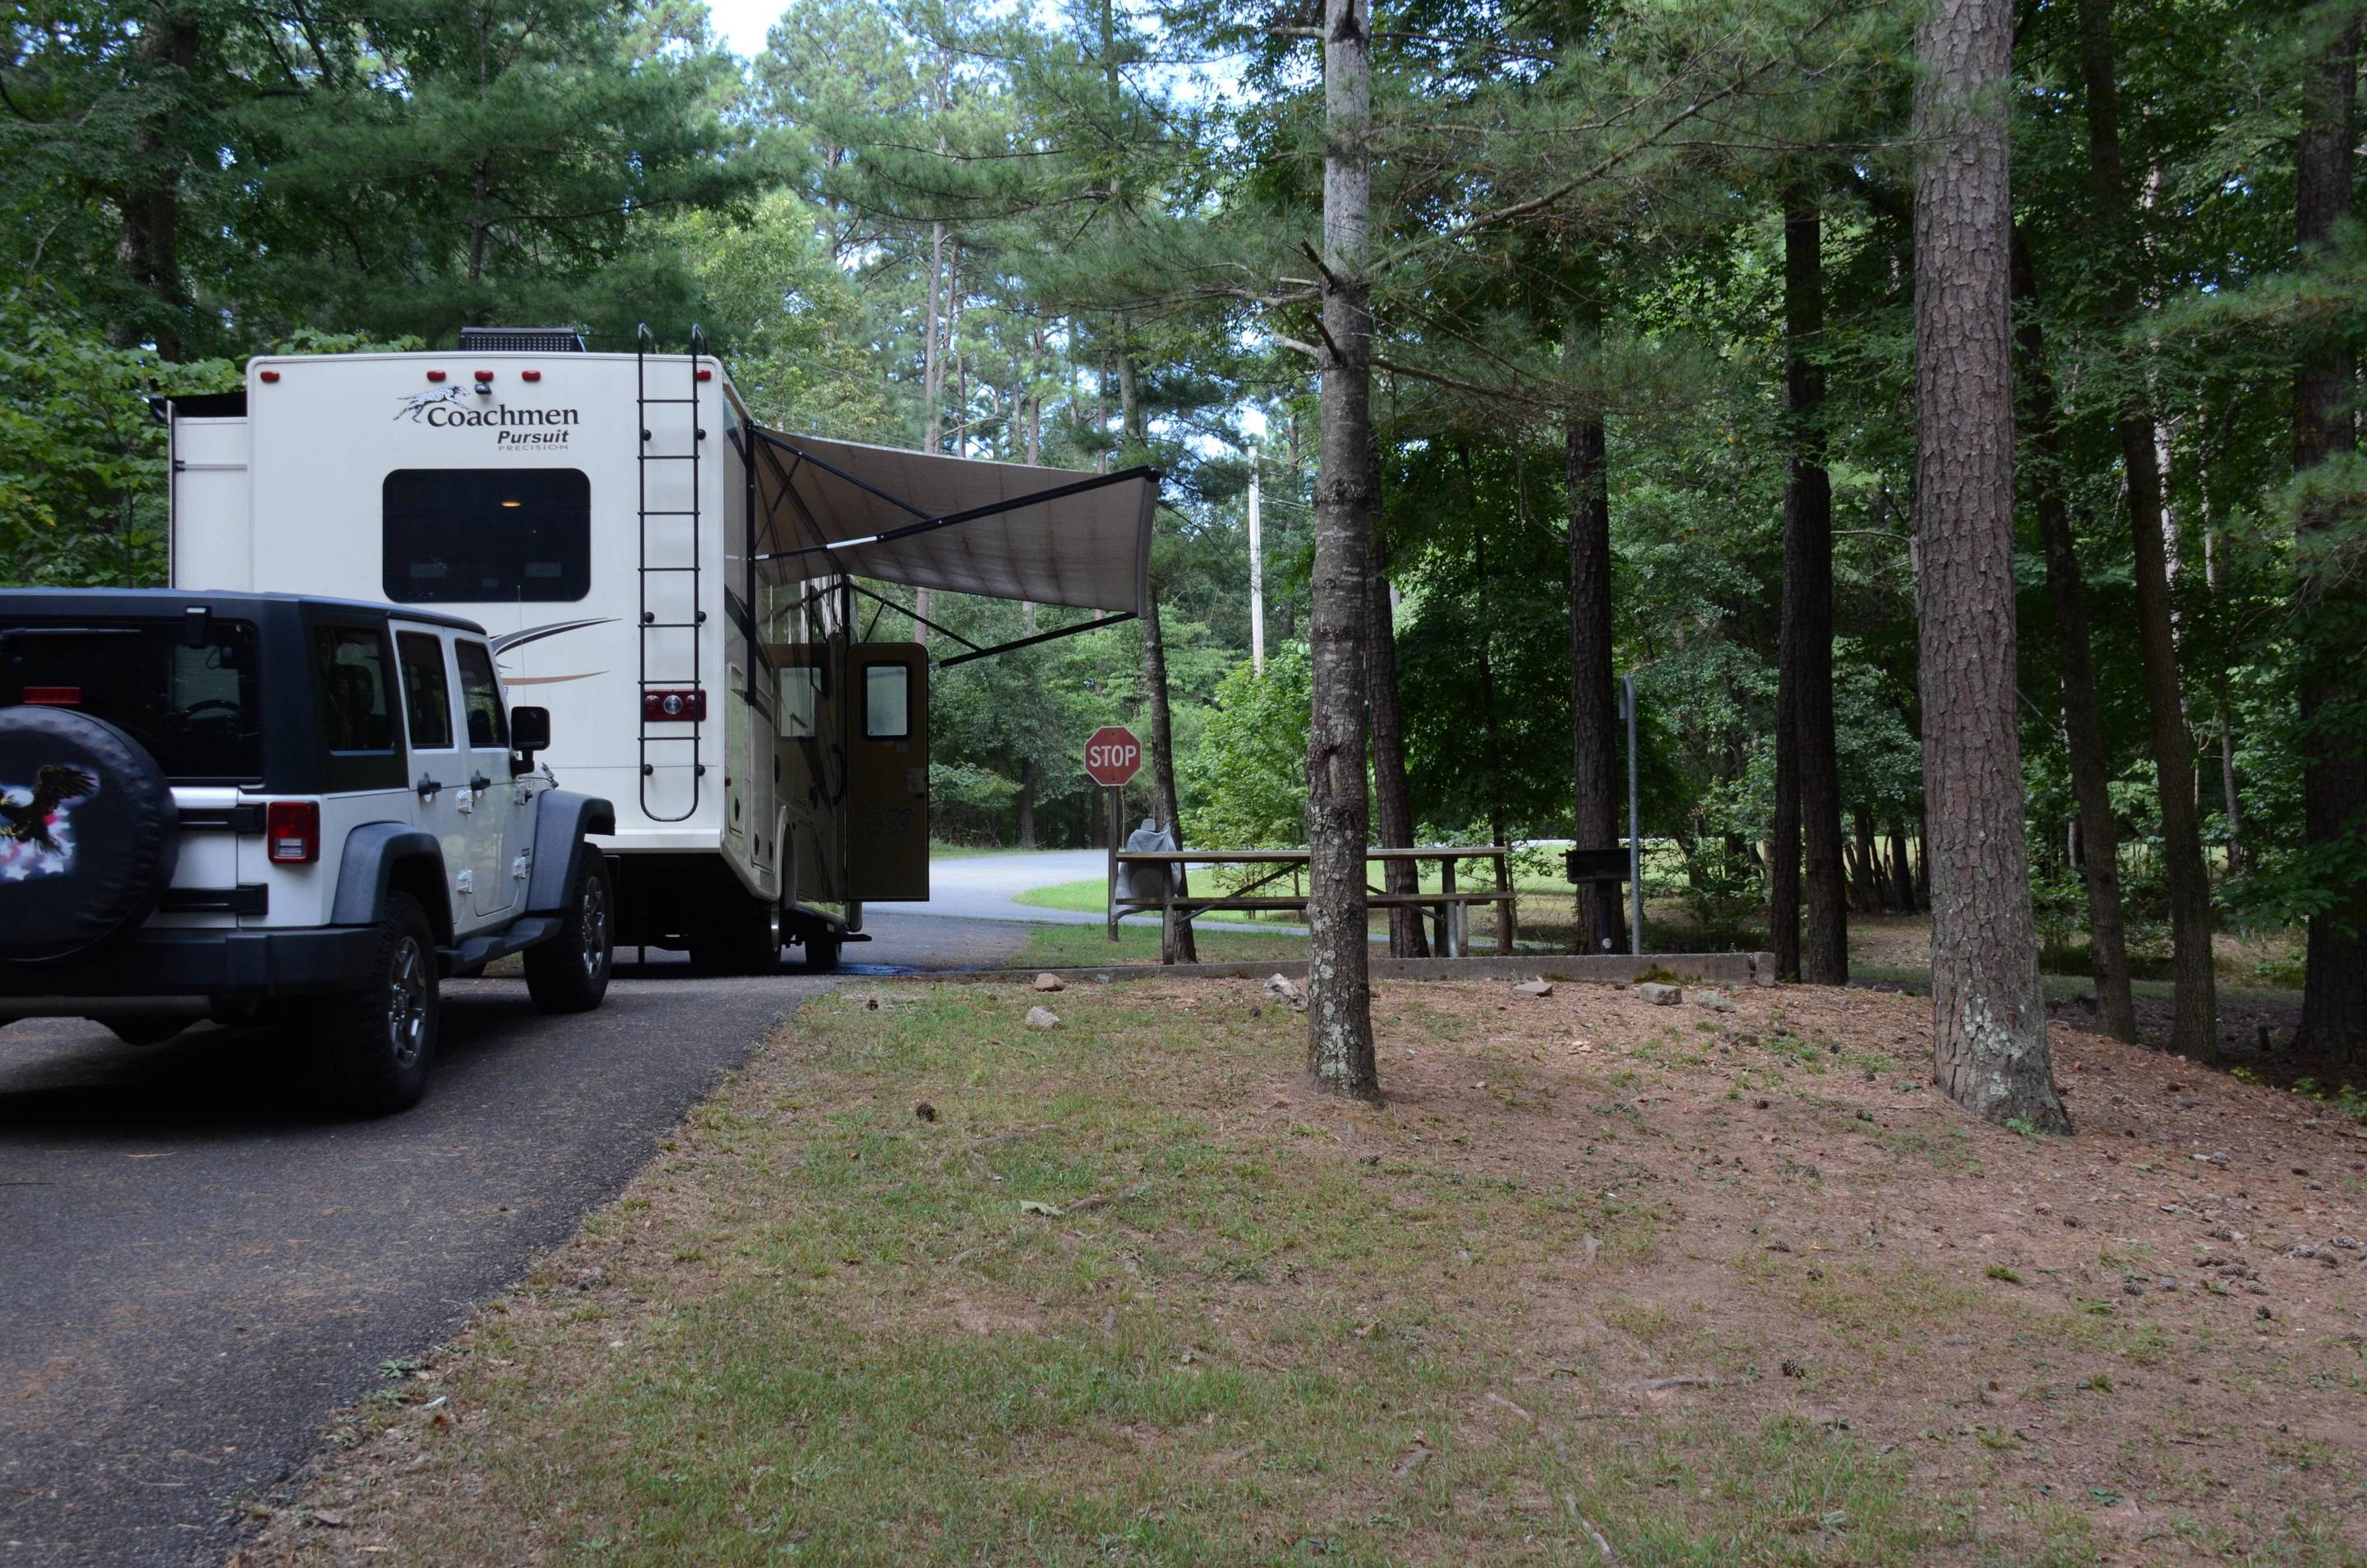 Awning-side clearance.McKinney Campground, campsite 12.